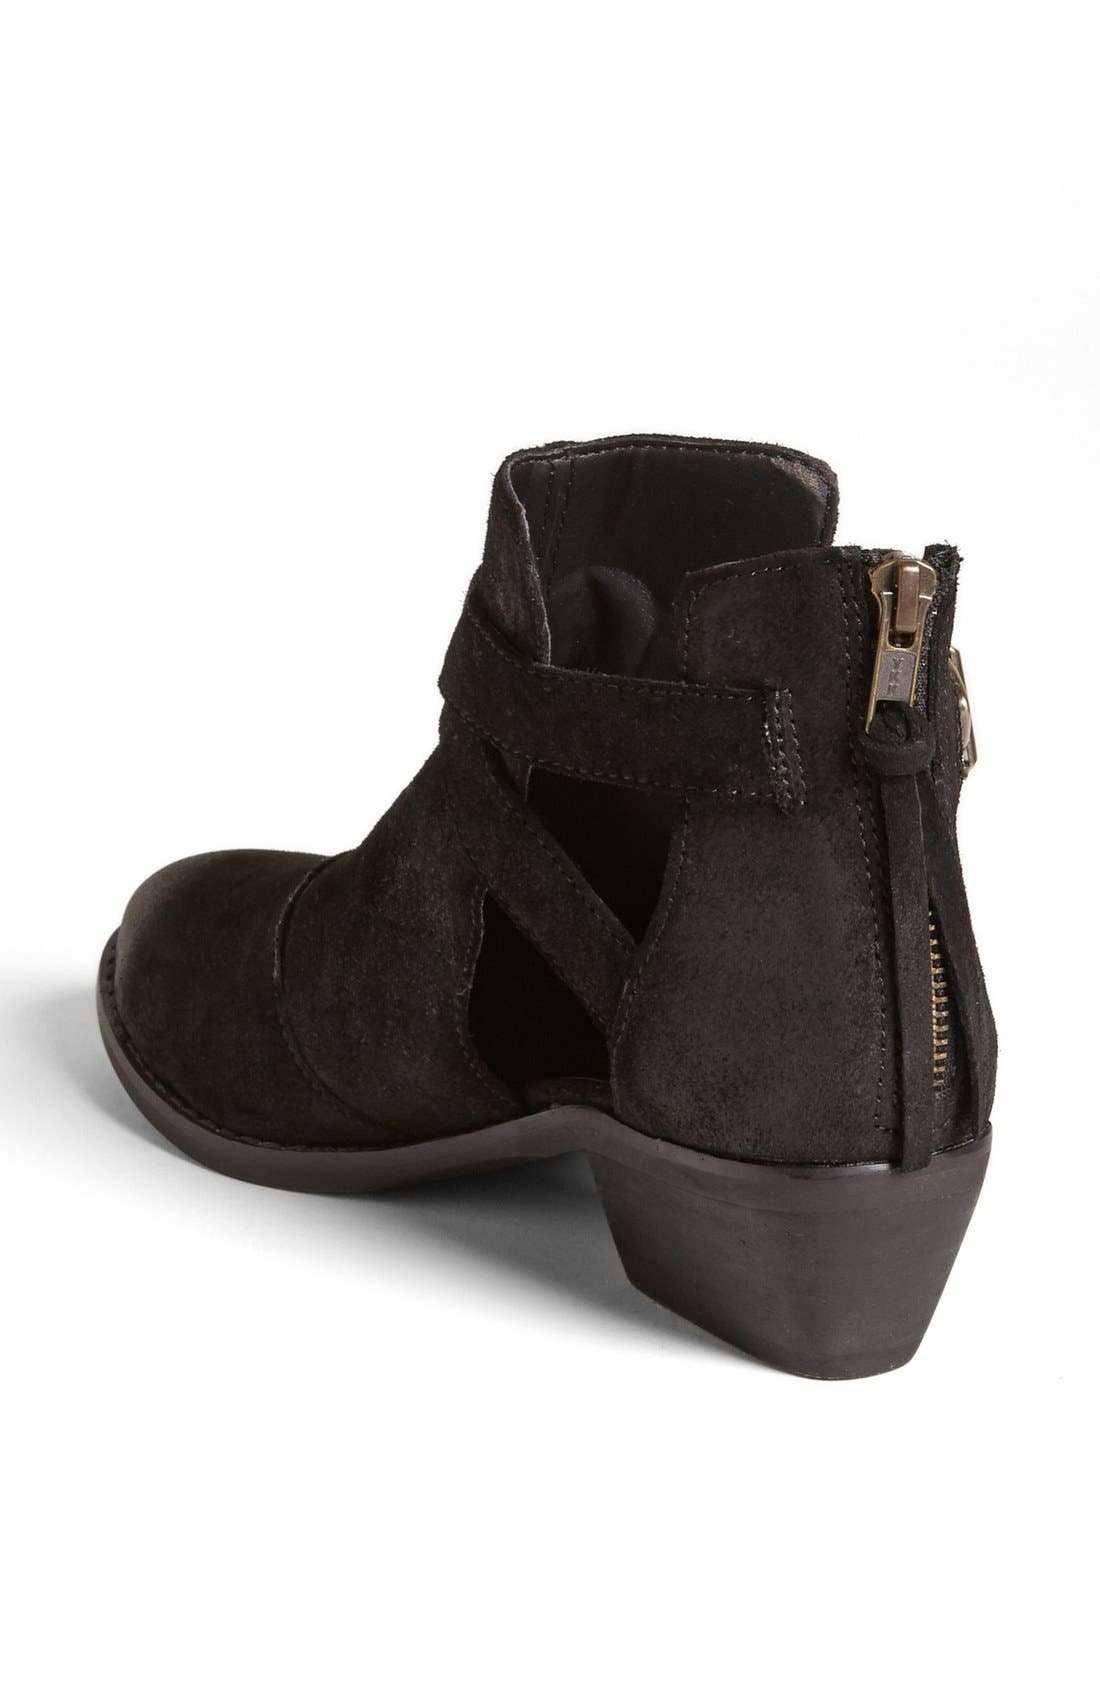 STEVE MADDEN,                             'Cinch' Bootie,                             Alternate thumbnail 3, color,                             006